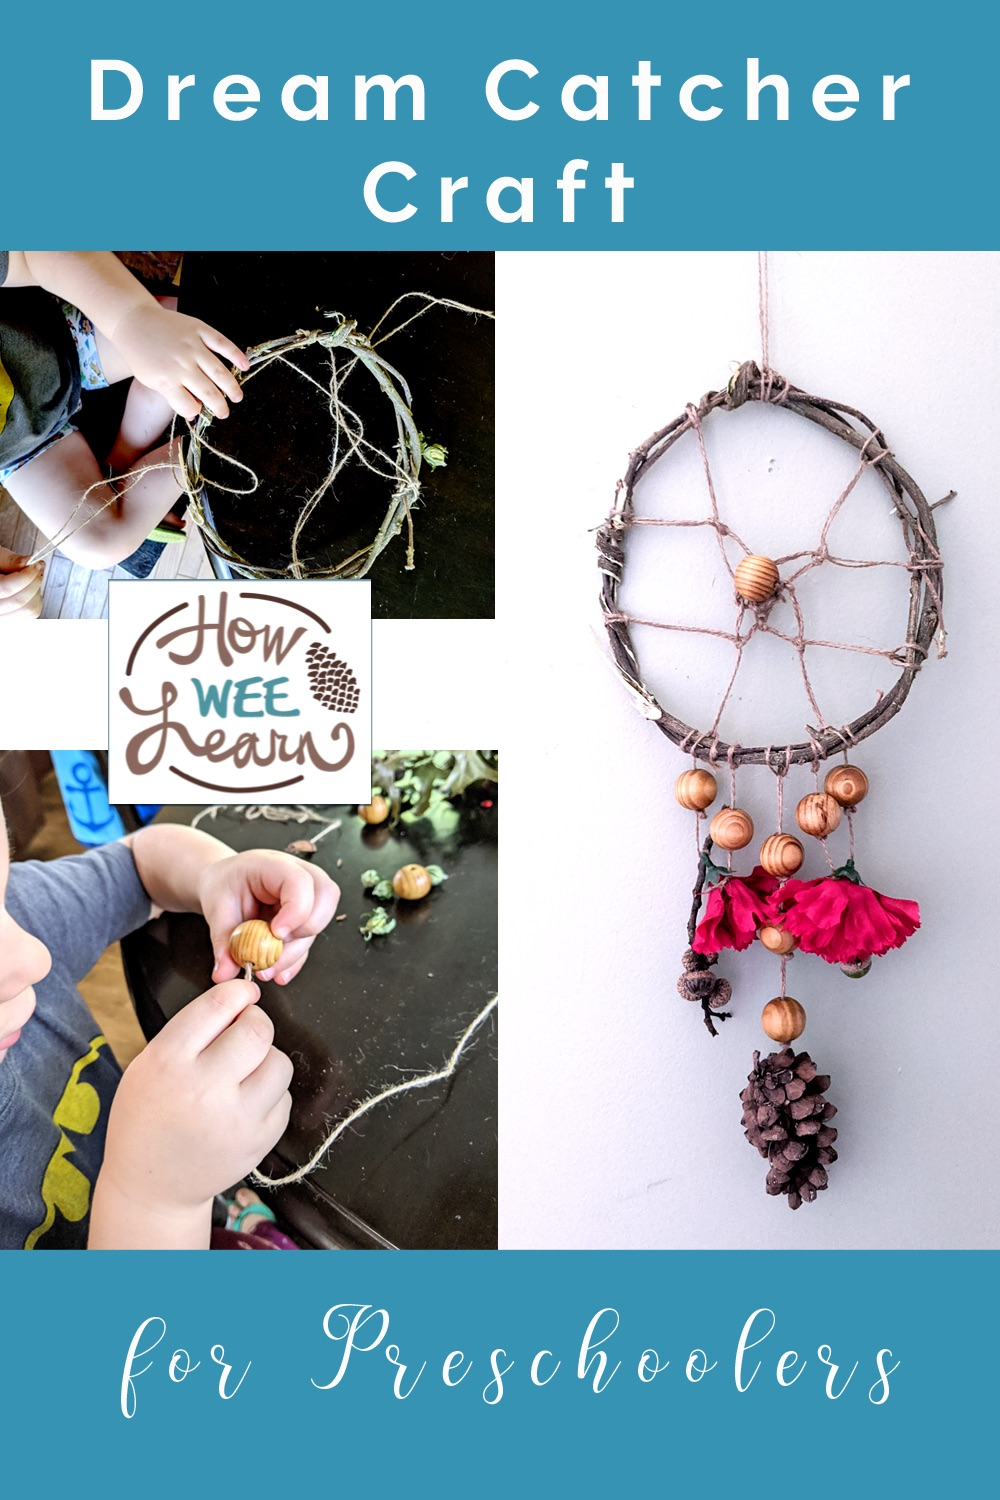 This dream catcher craft for preschoolers is so great for practicing fine motor skills, calming down kidsand creating calmer nights.